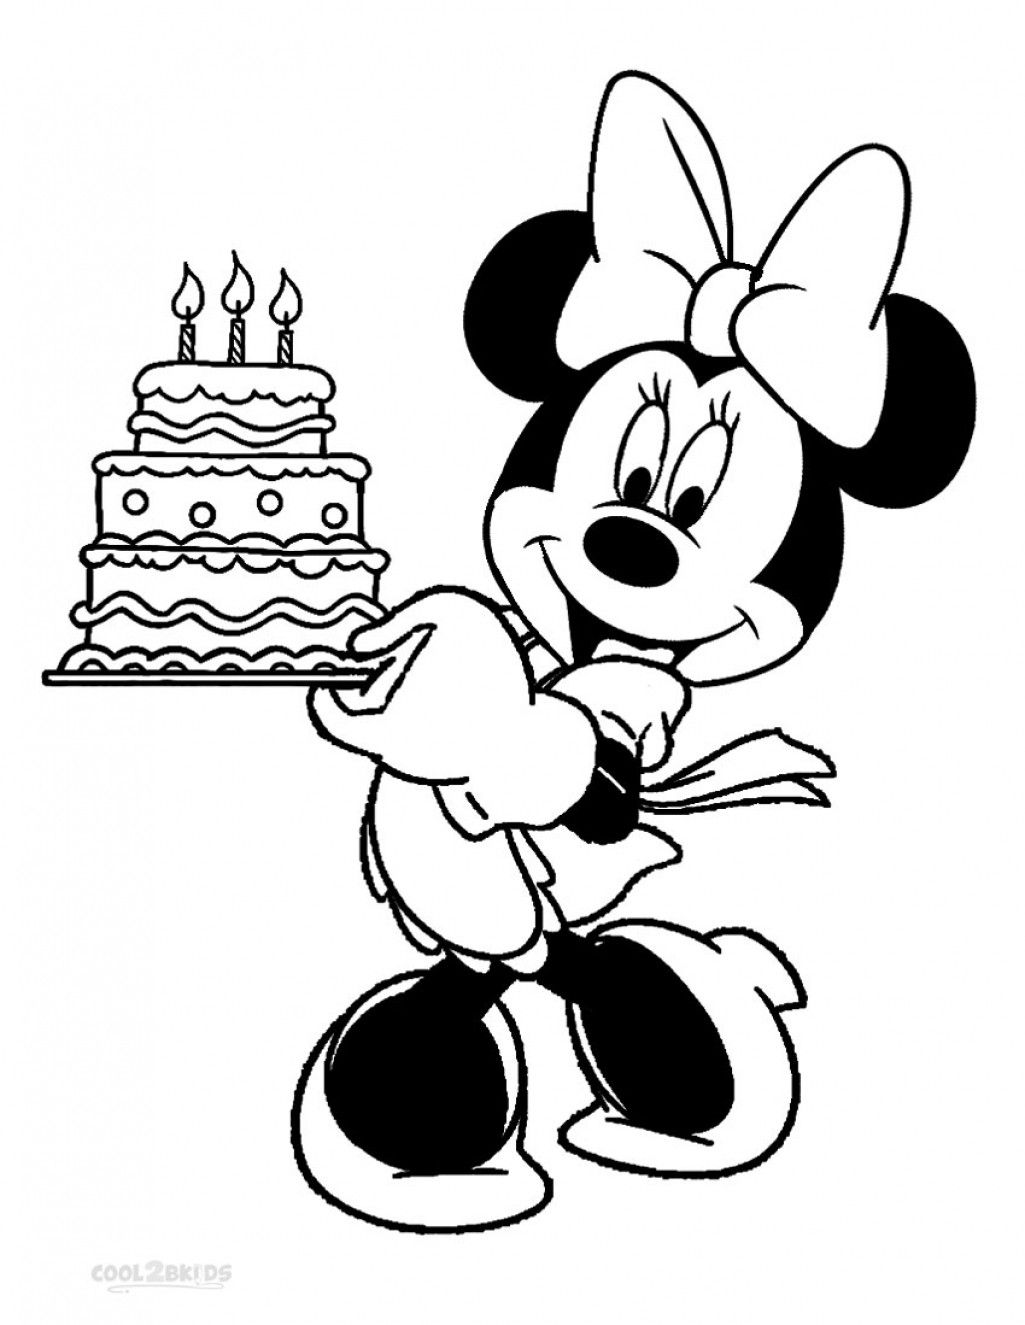 Baby Mickey Mouse Coloring Pages To Print Copy Free Disney